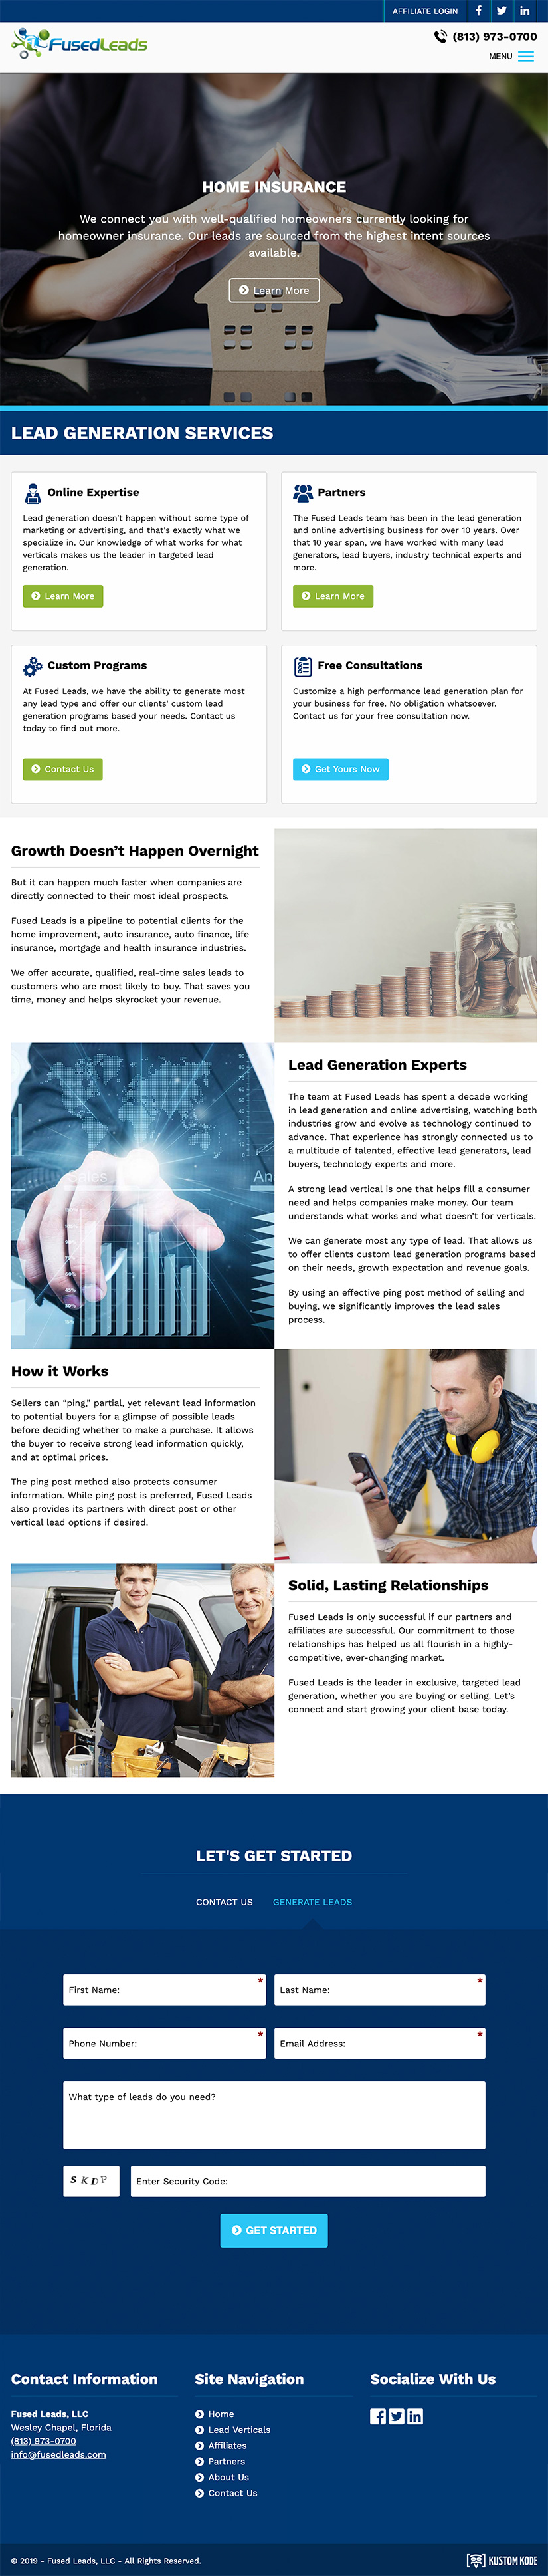 Web Design for a Lead Generation Company